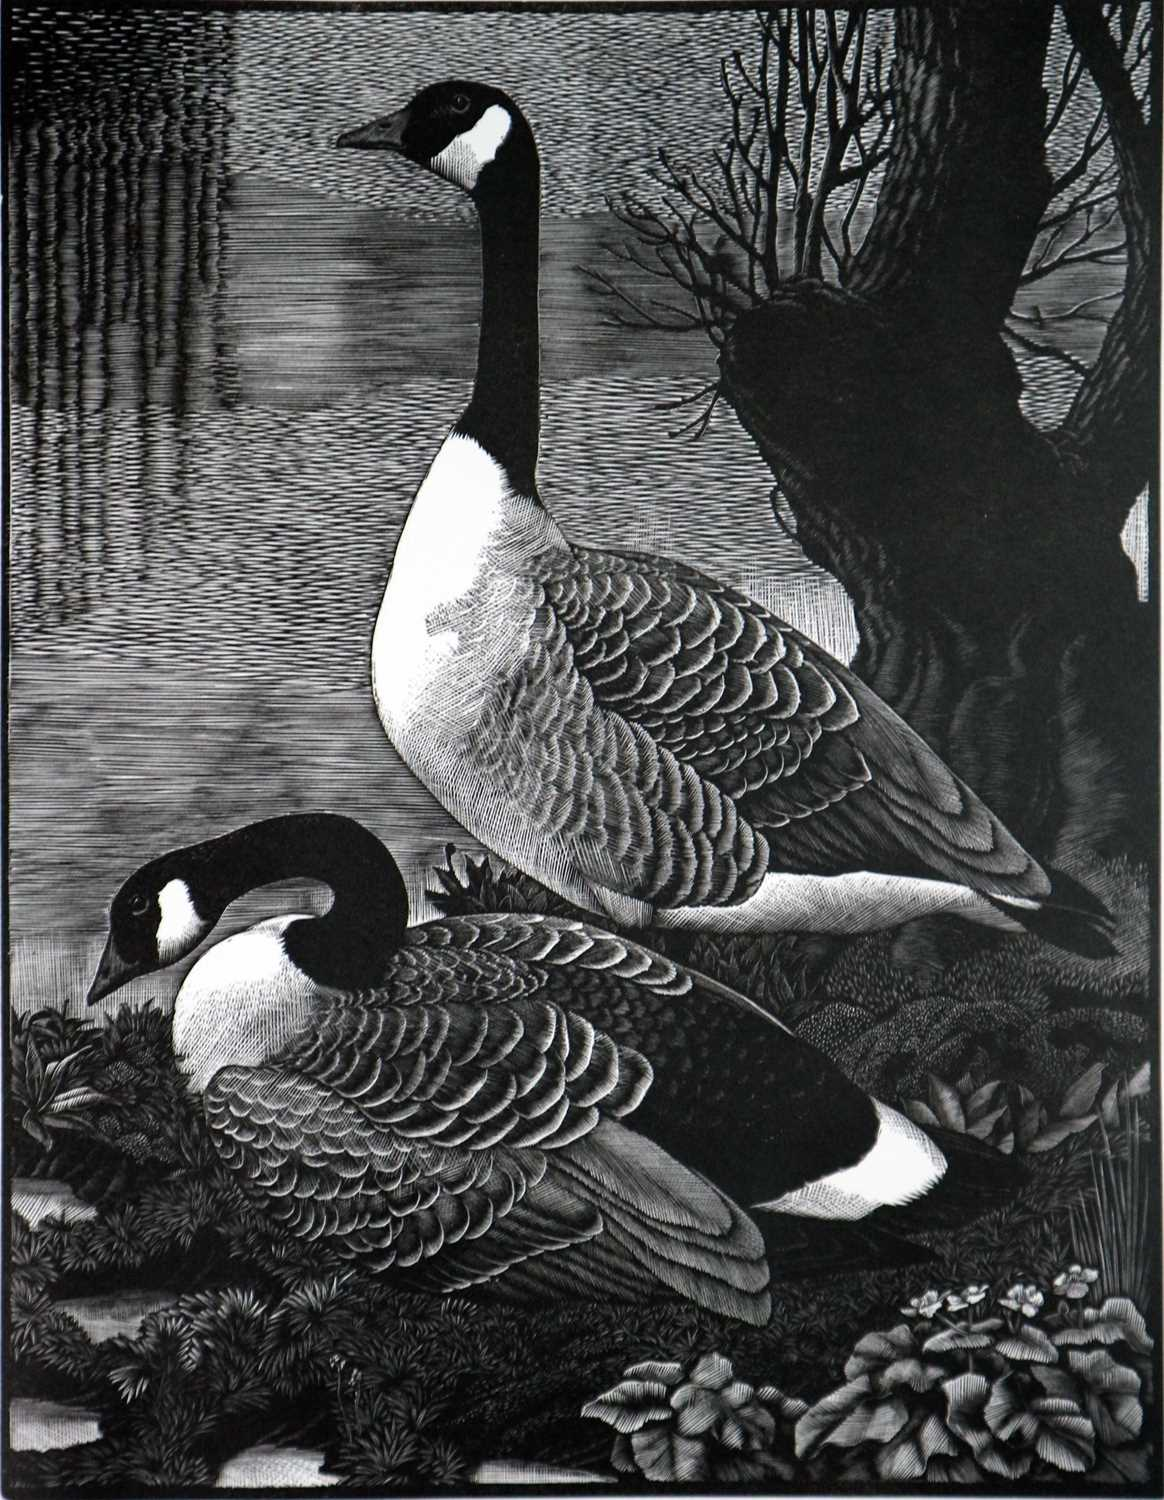 Charles Frederick Tunnicliffe OBE RA (1901-1979) The Memorial Collection Parts I and II - Image 8 of 19